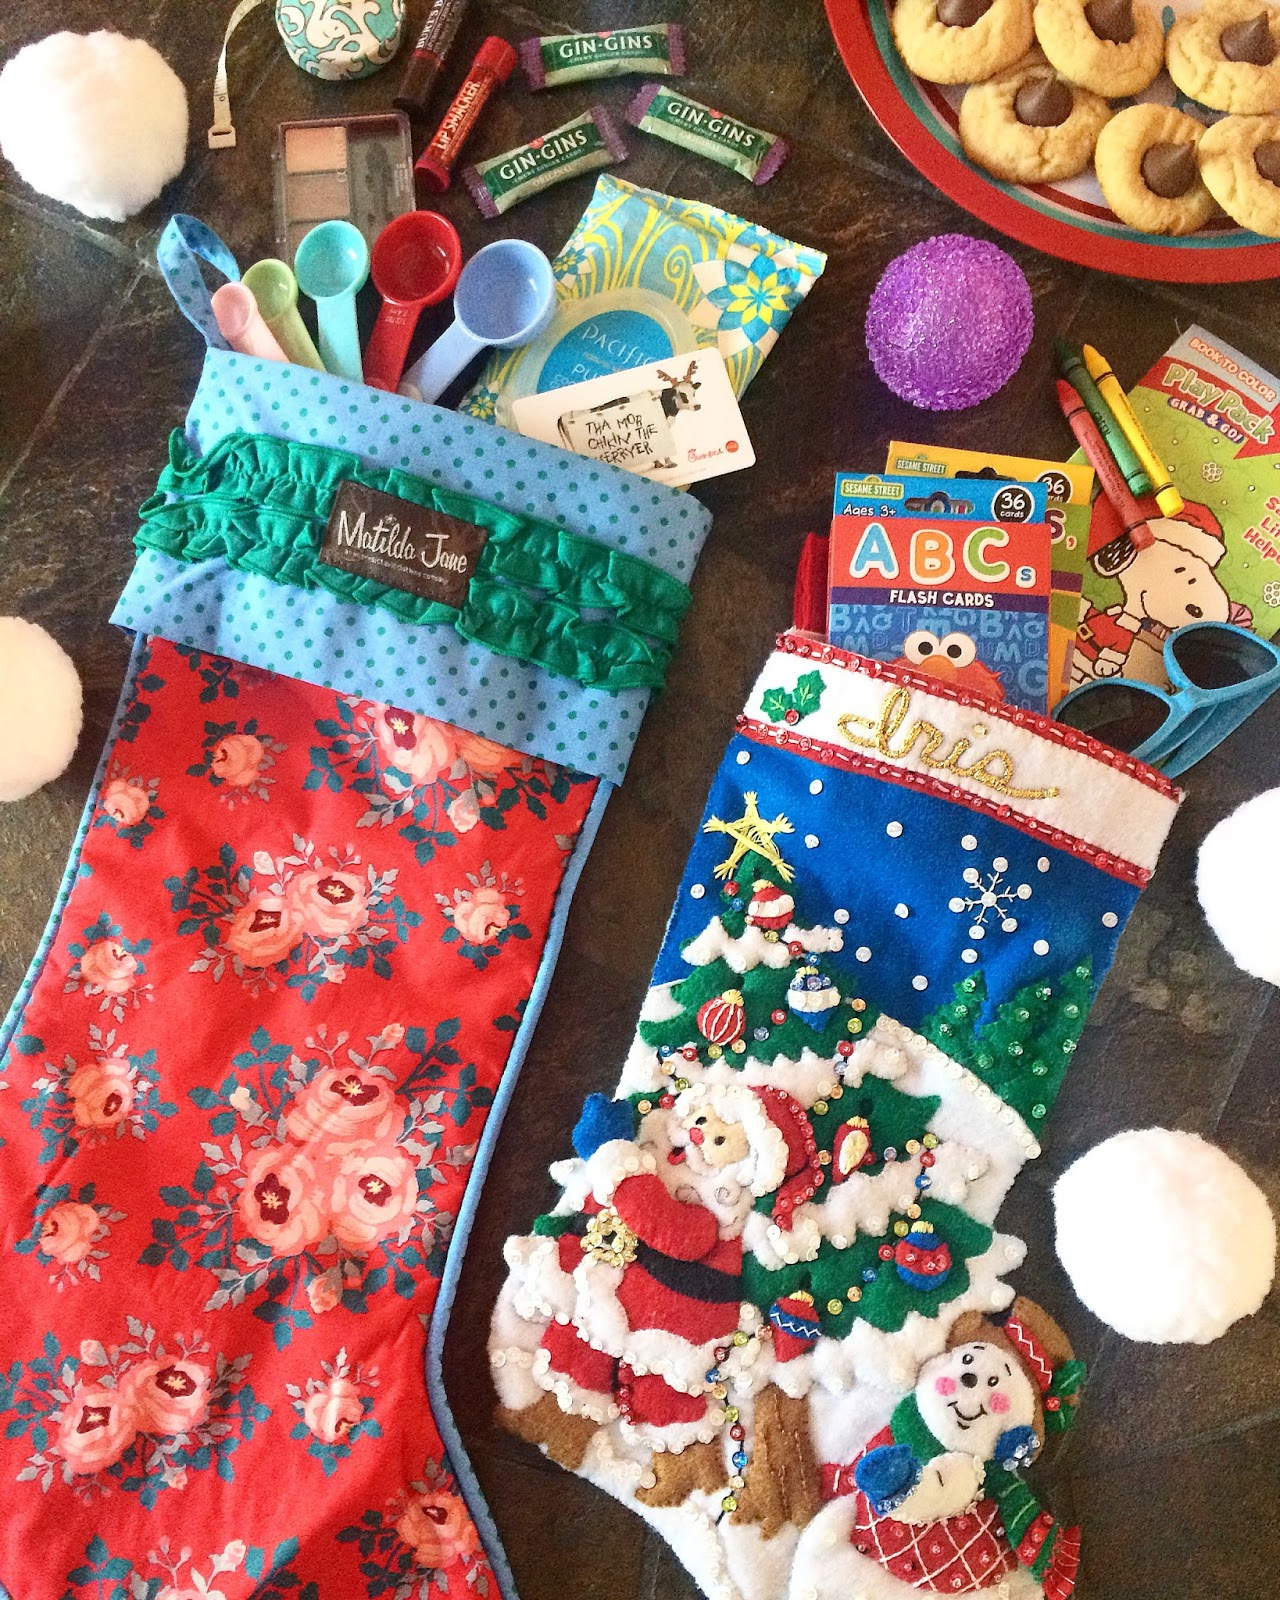 Filling And Opening Christmas Stockings Might Be One Of My Favorite Holiday Traditions They Definitely Stand Out Because While I Always Made A Wish List